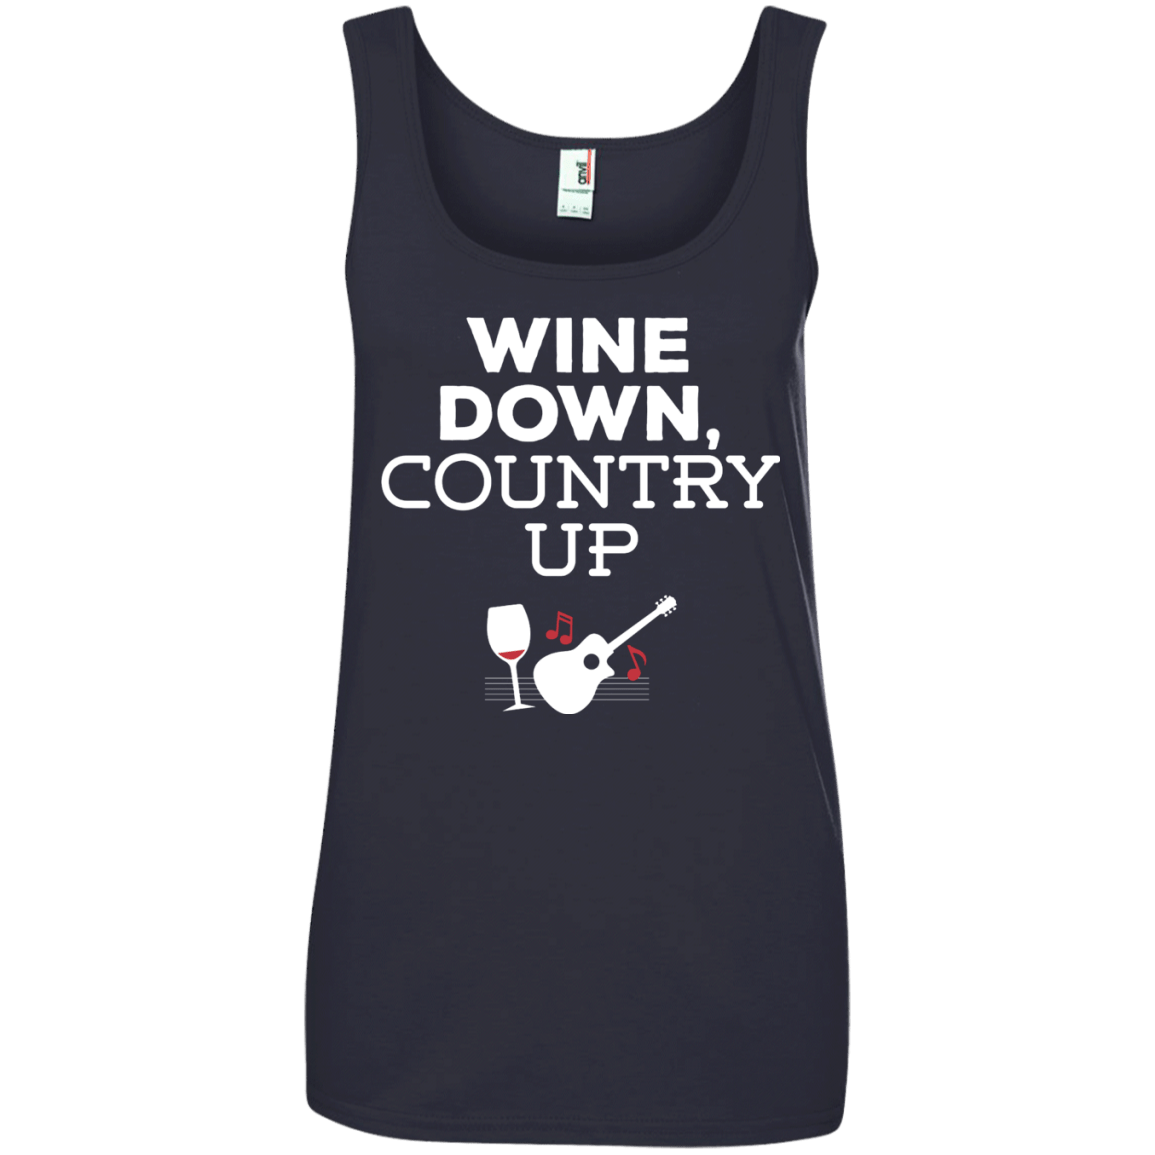 Wine Down, Country Up